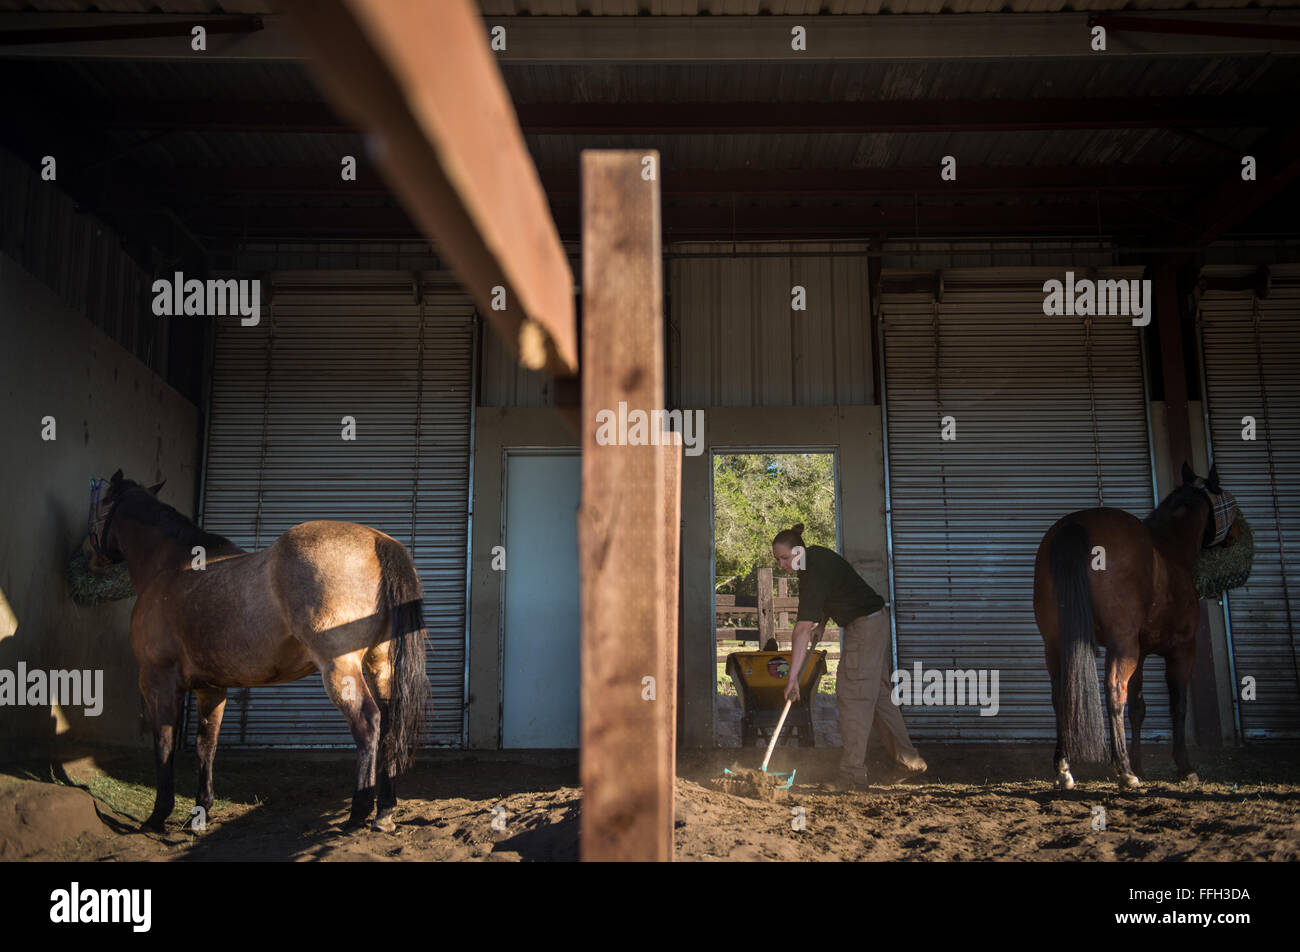 During the mornings, Reserve Staff Sgt. Lauren Daniels mucks out the horse stables as part of checklist to maintain - Stock Image